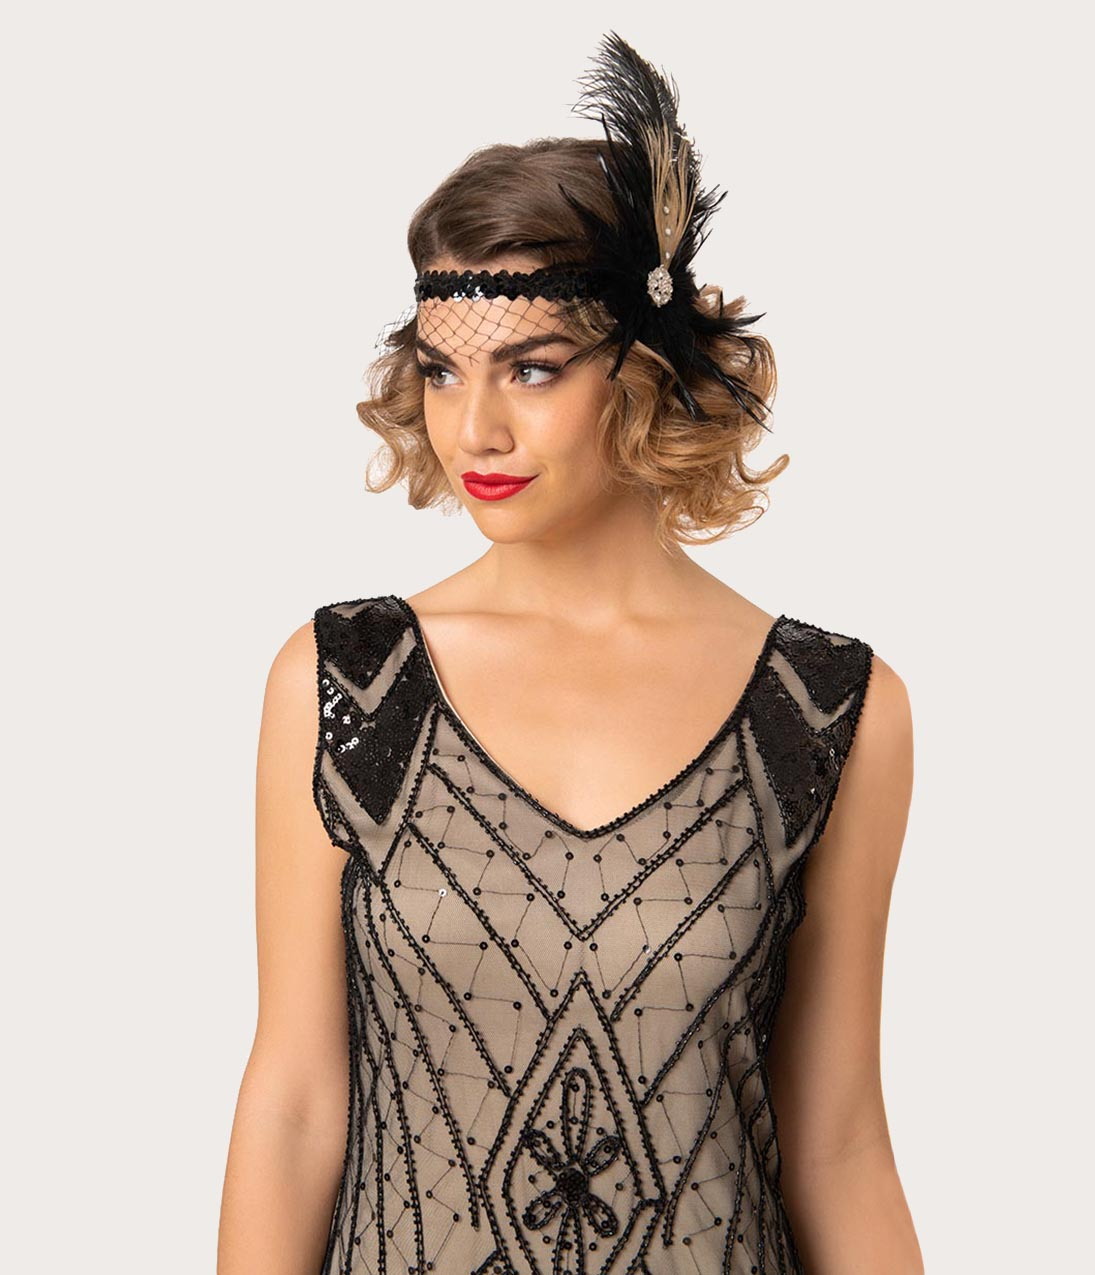 1920s Clothing Black Sequin Netted Roaring 20S Feather Headpiece $24.00 AT vintagedancer.com